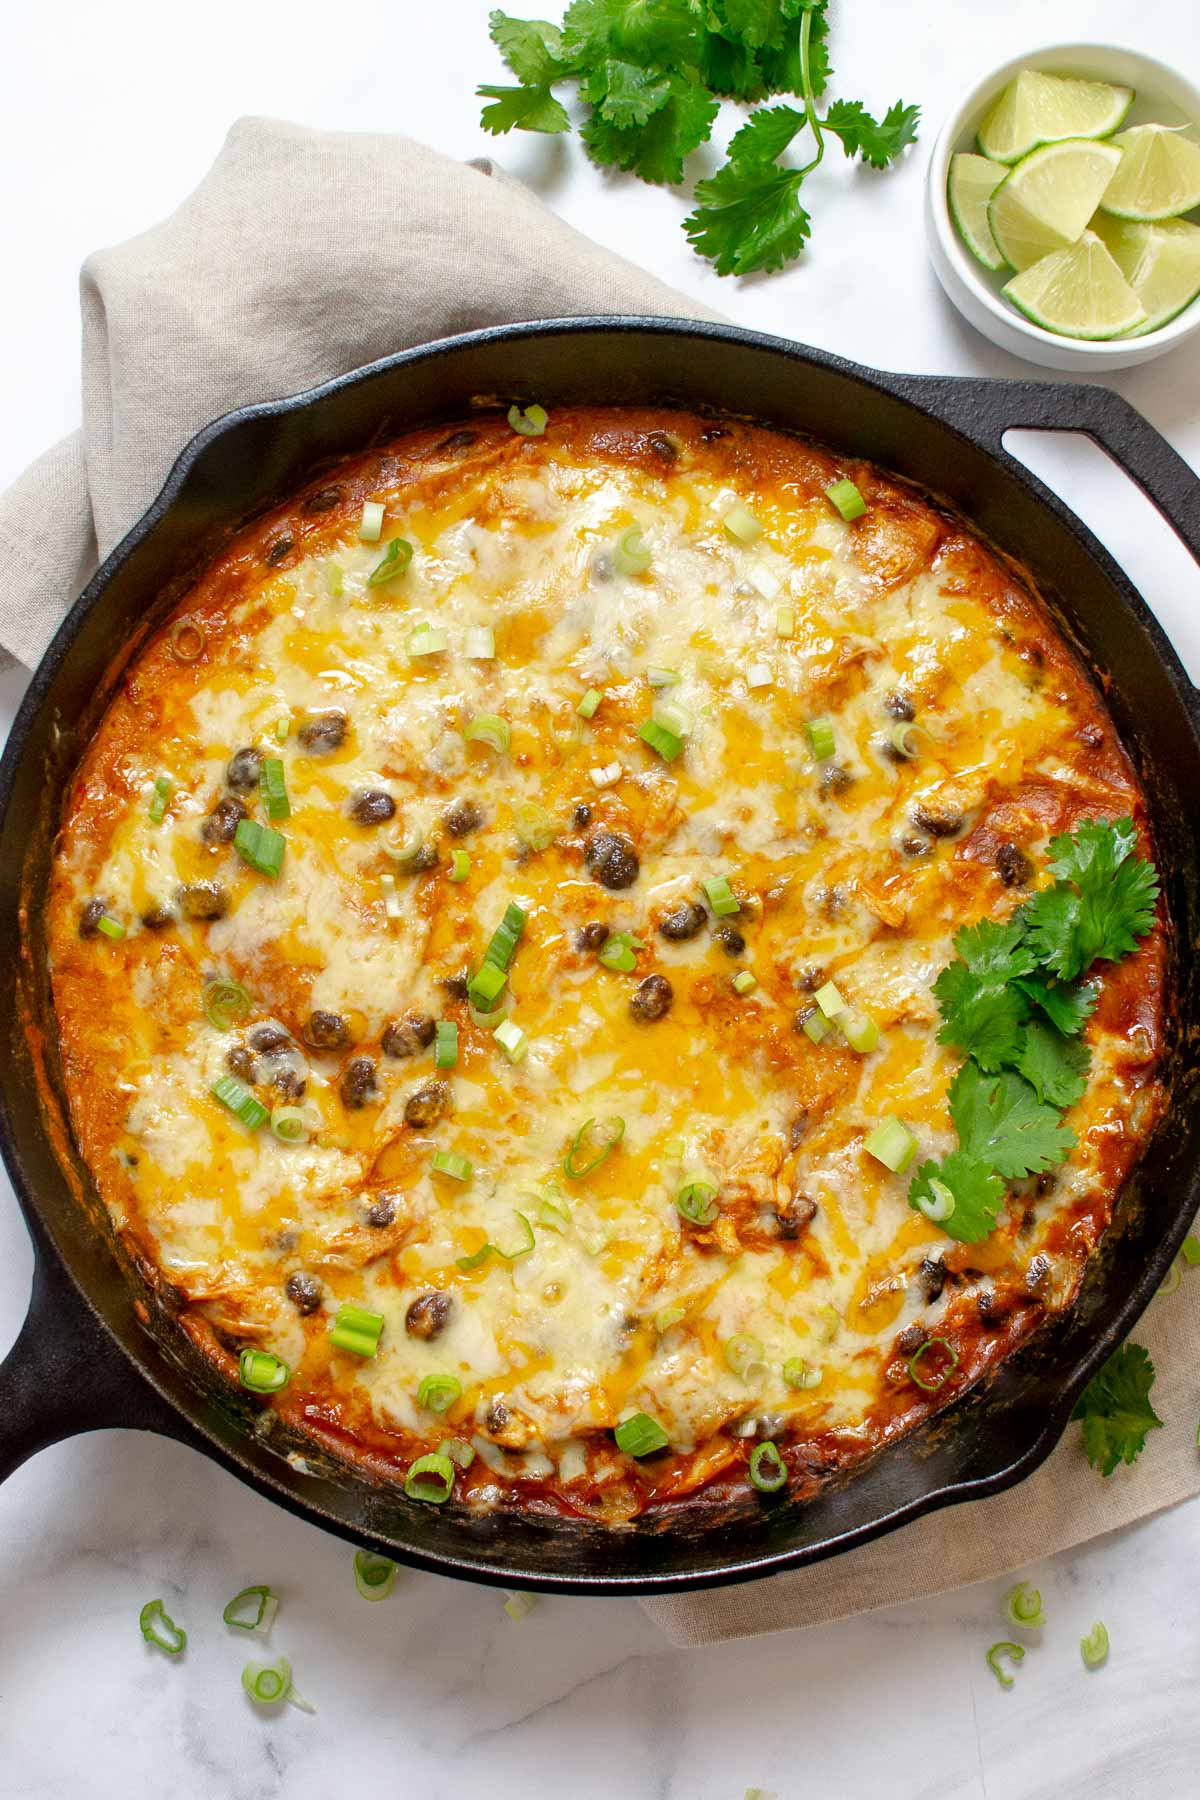 Chicken enchilada skillet on a table garnished with cilantro and lime wedges.